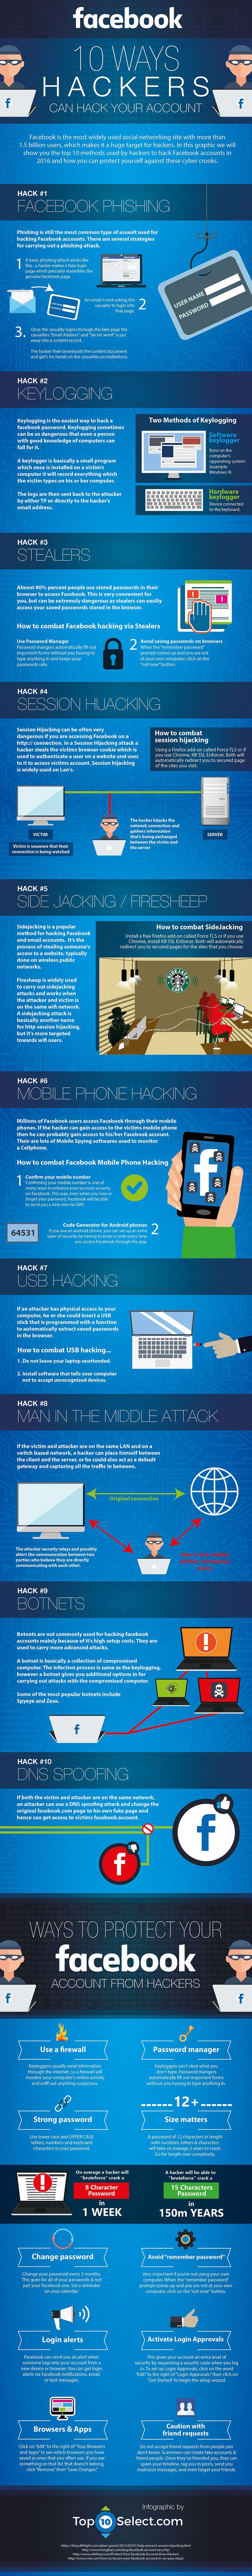 10 ways info to protect your social media accounts